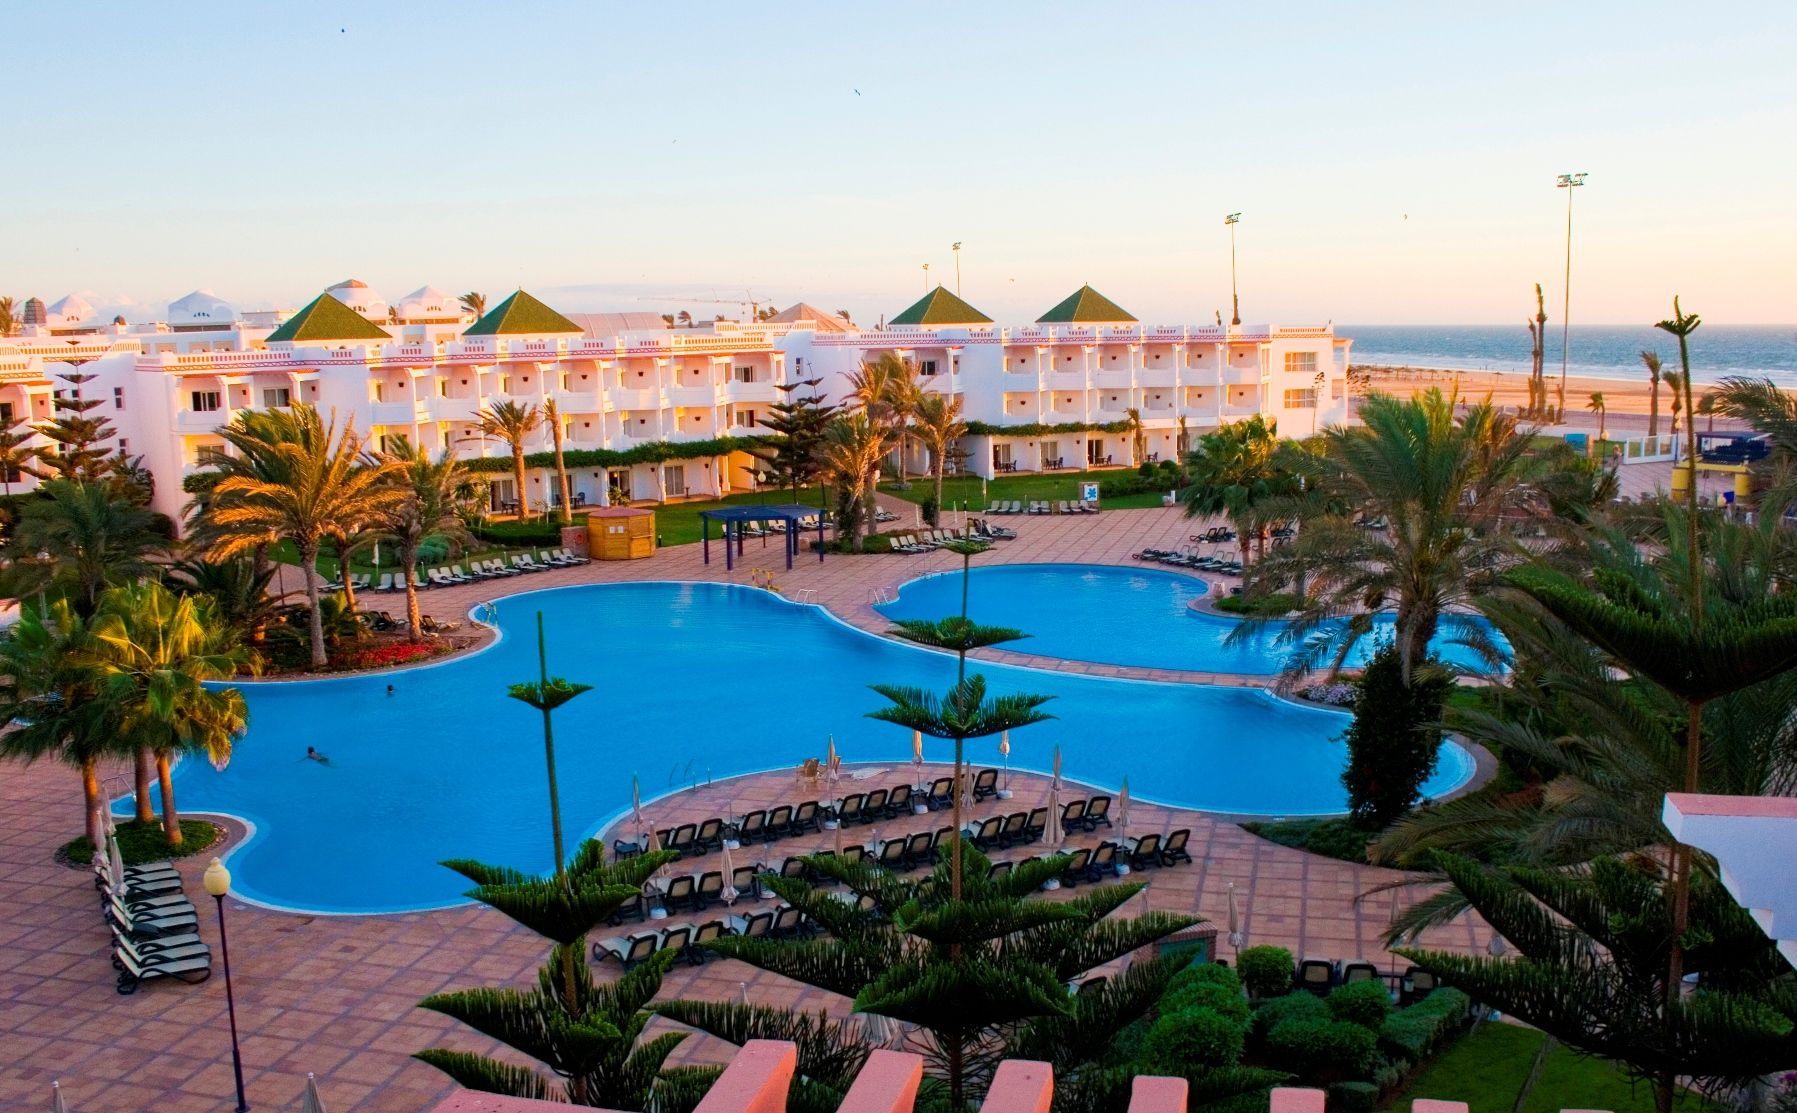 Limited offer Save GBP100 if you book AI 4-star holiday to